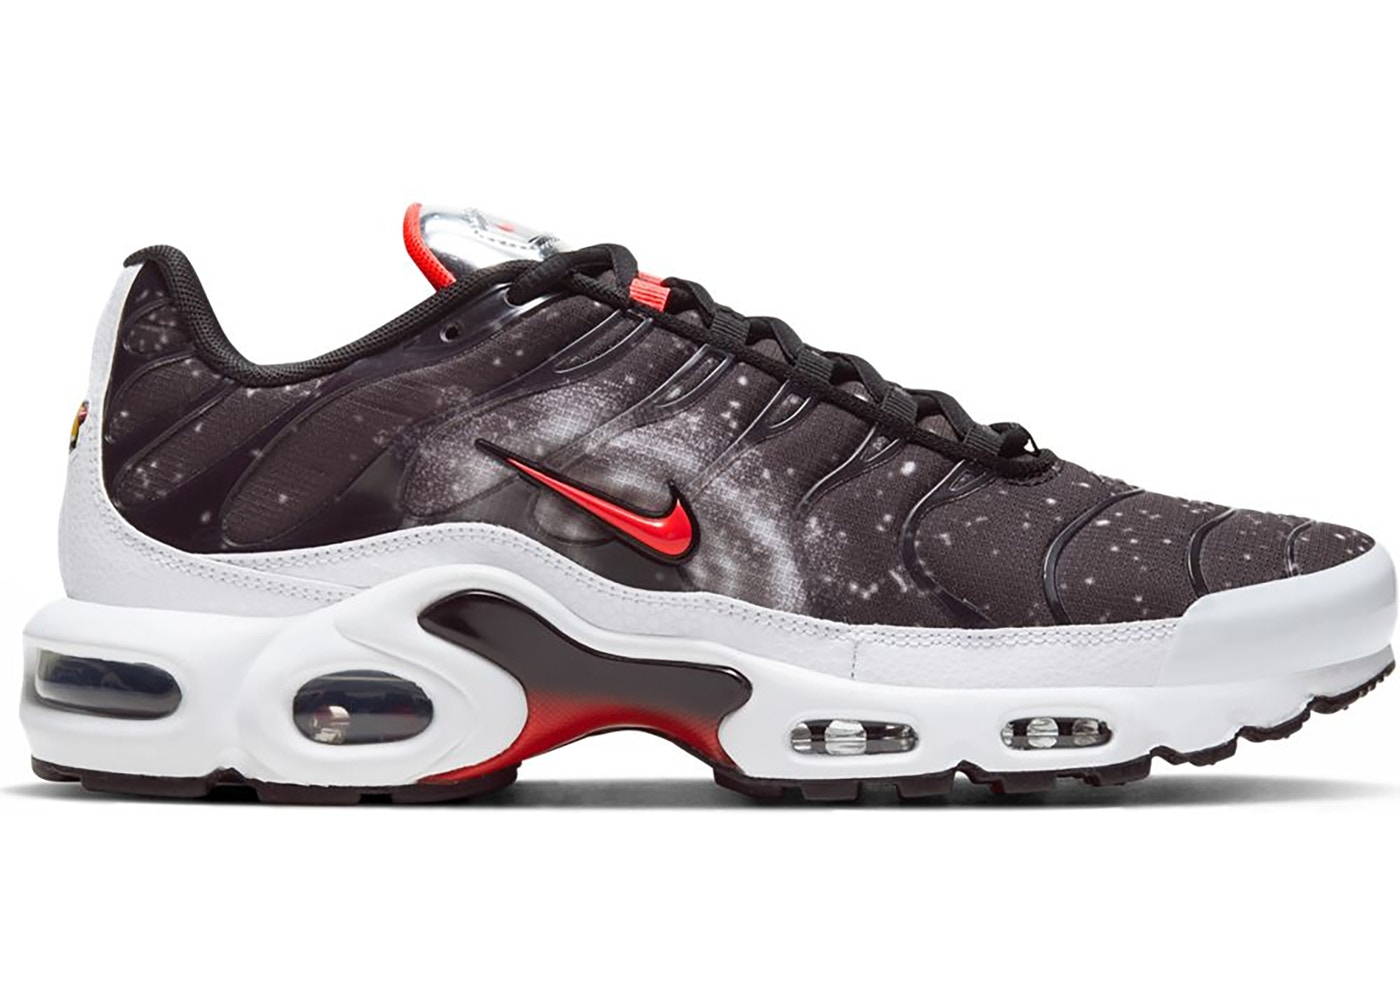 Nike Air Max Plus Supernova 2020 Cw6019 001